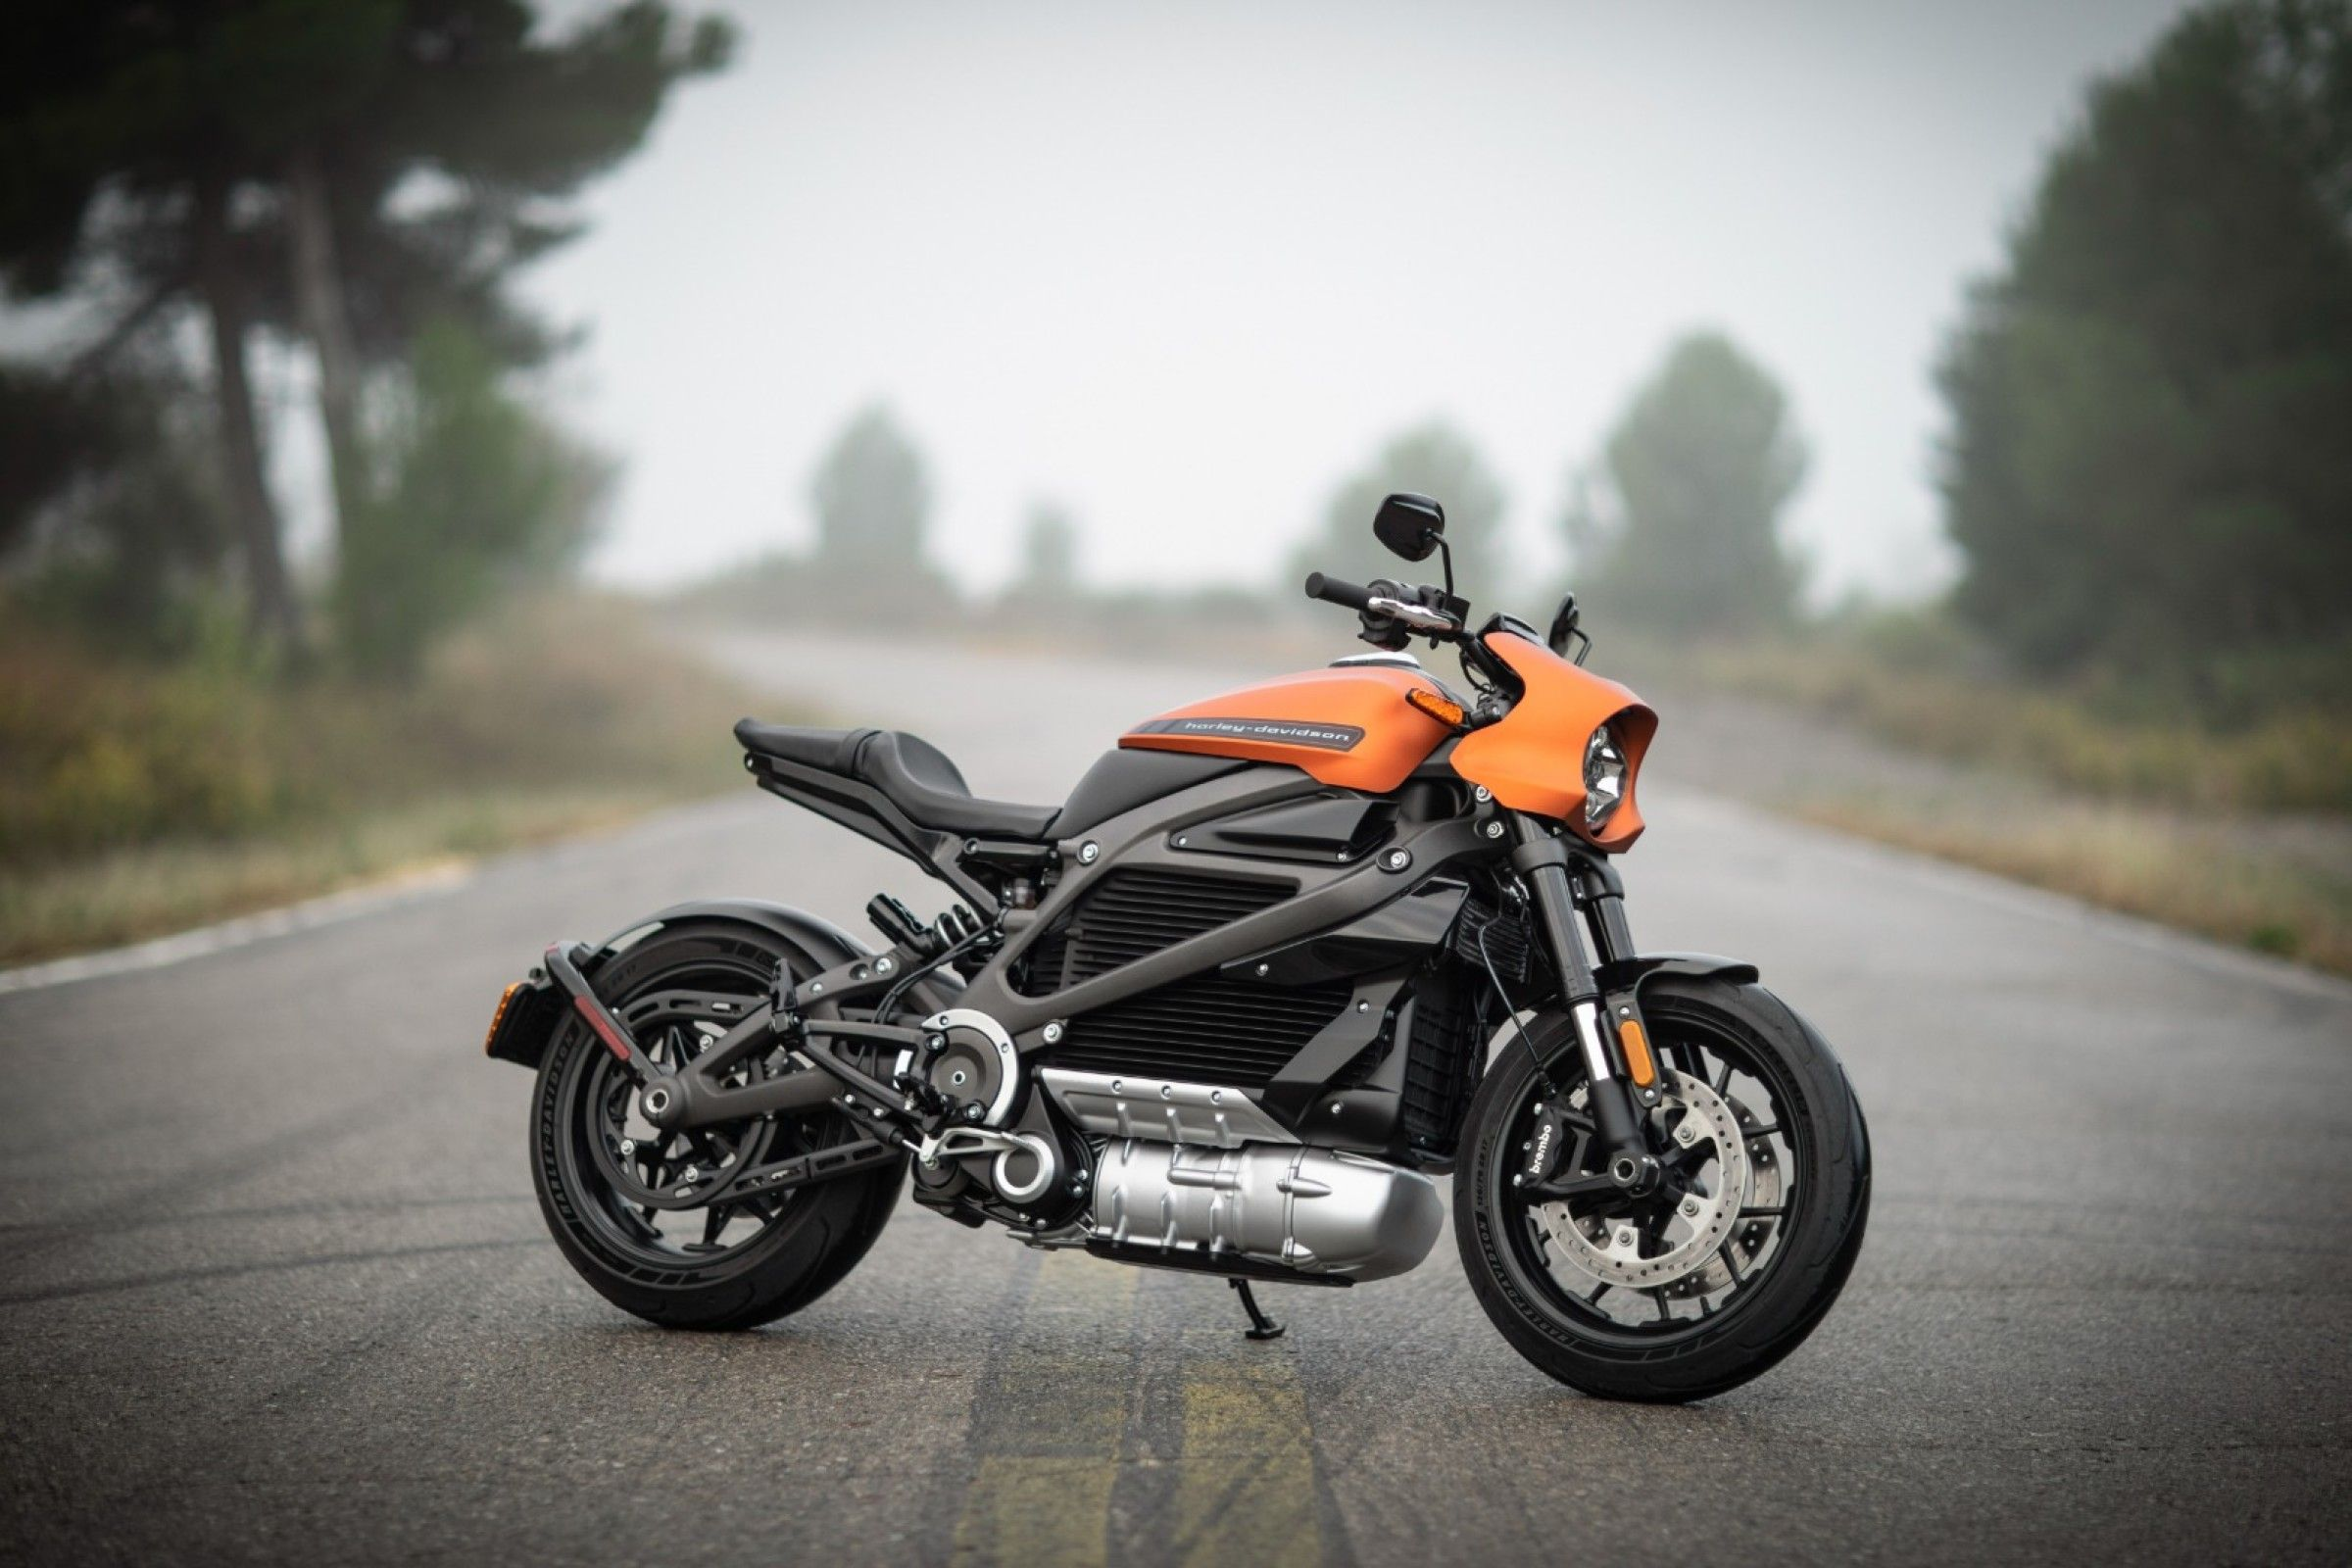 Harley Davidson Releases Livewire Specs And Two Wacky E Bike Concepts Harley Davidson Bike Bike Prices